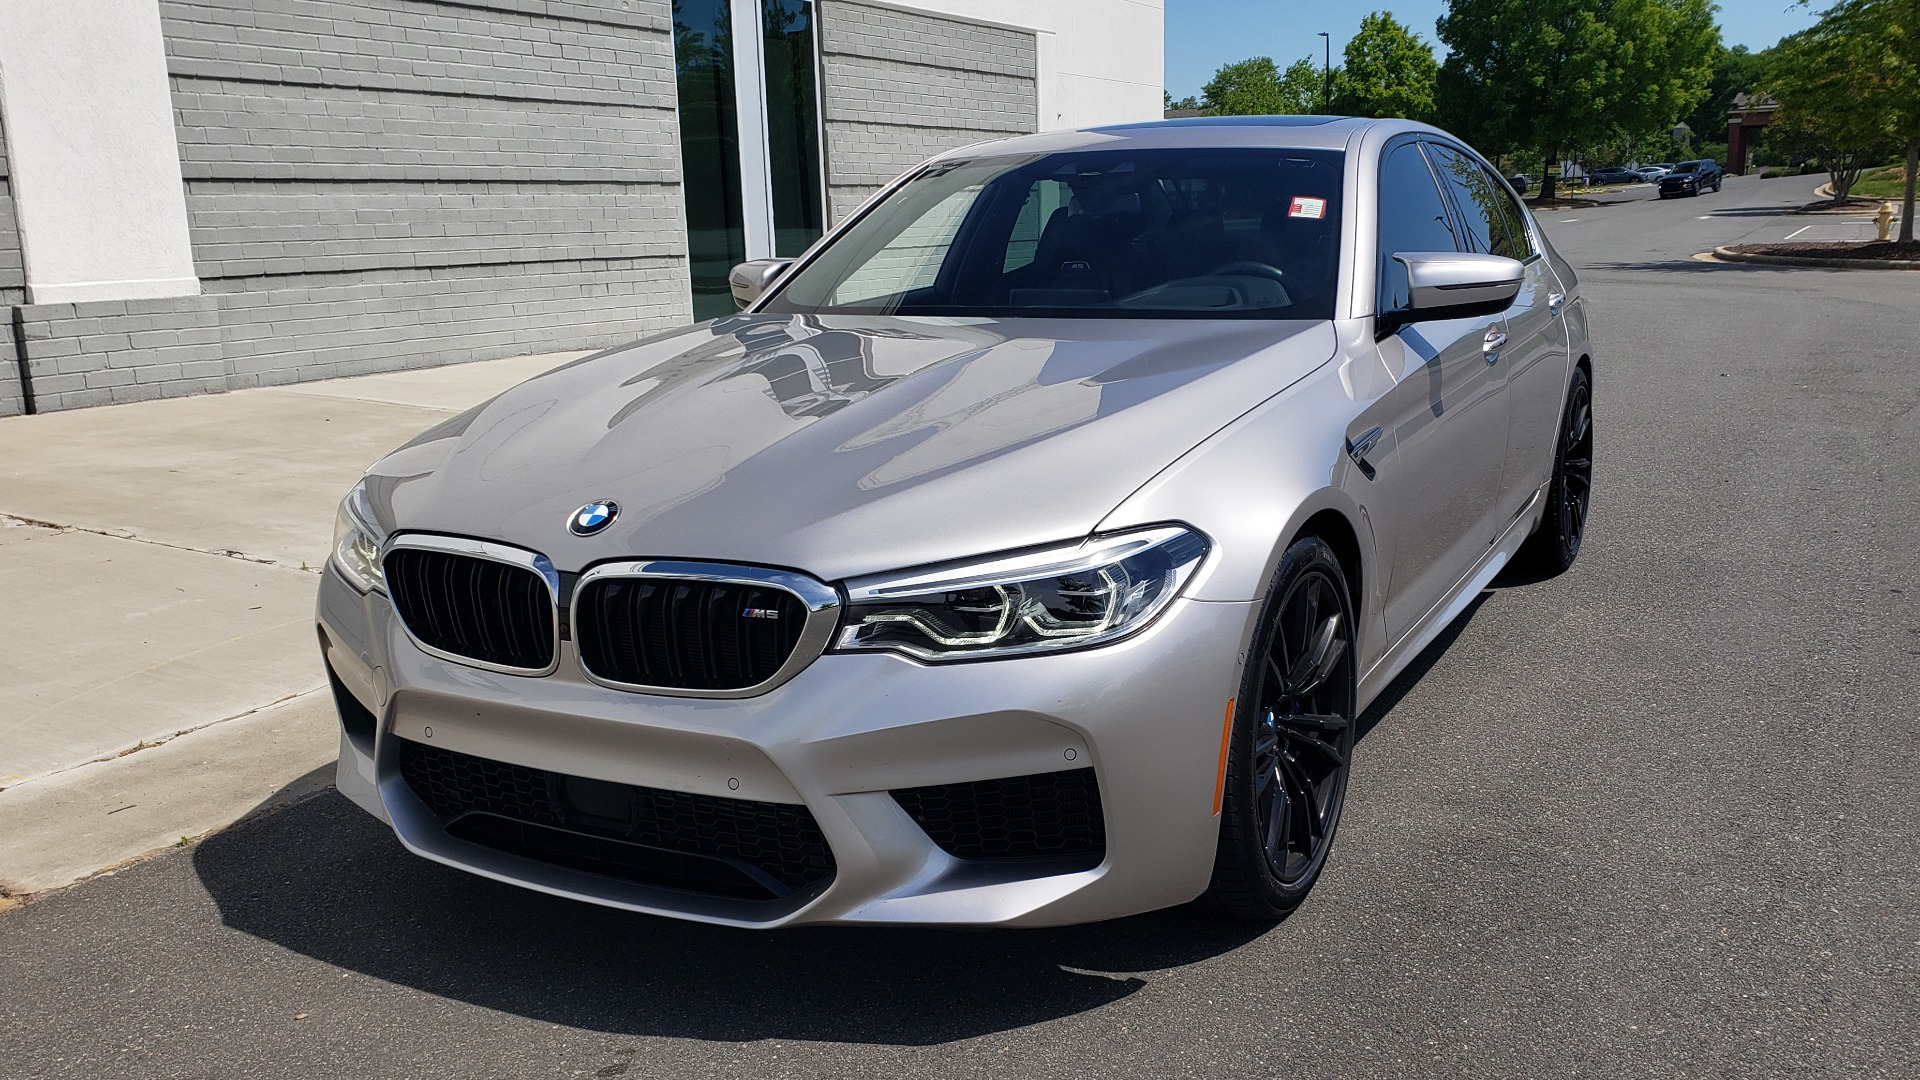 Used 2018 BMW M5 SEDAN / EXEC PKG / DRVR ASST PLUS / MOONROOF / B&W SND for sale $81,495 at Formula Imports in Charlotte NC 28227 3